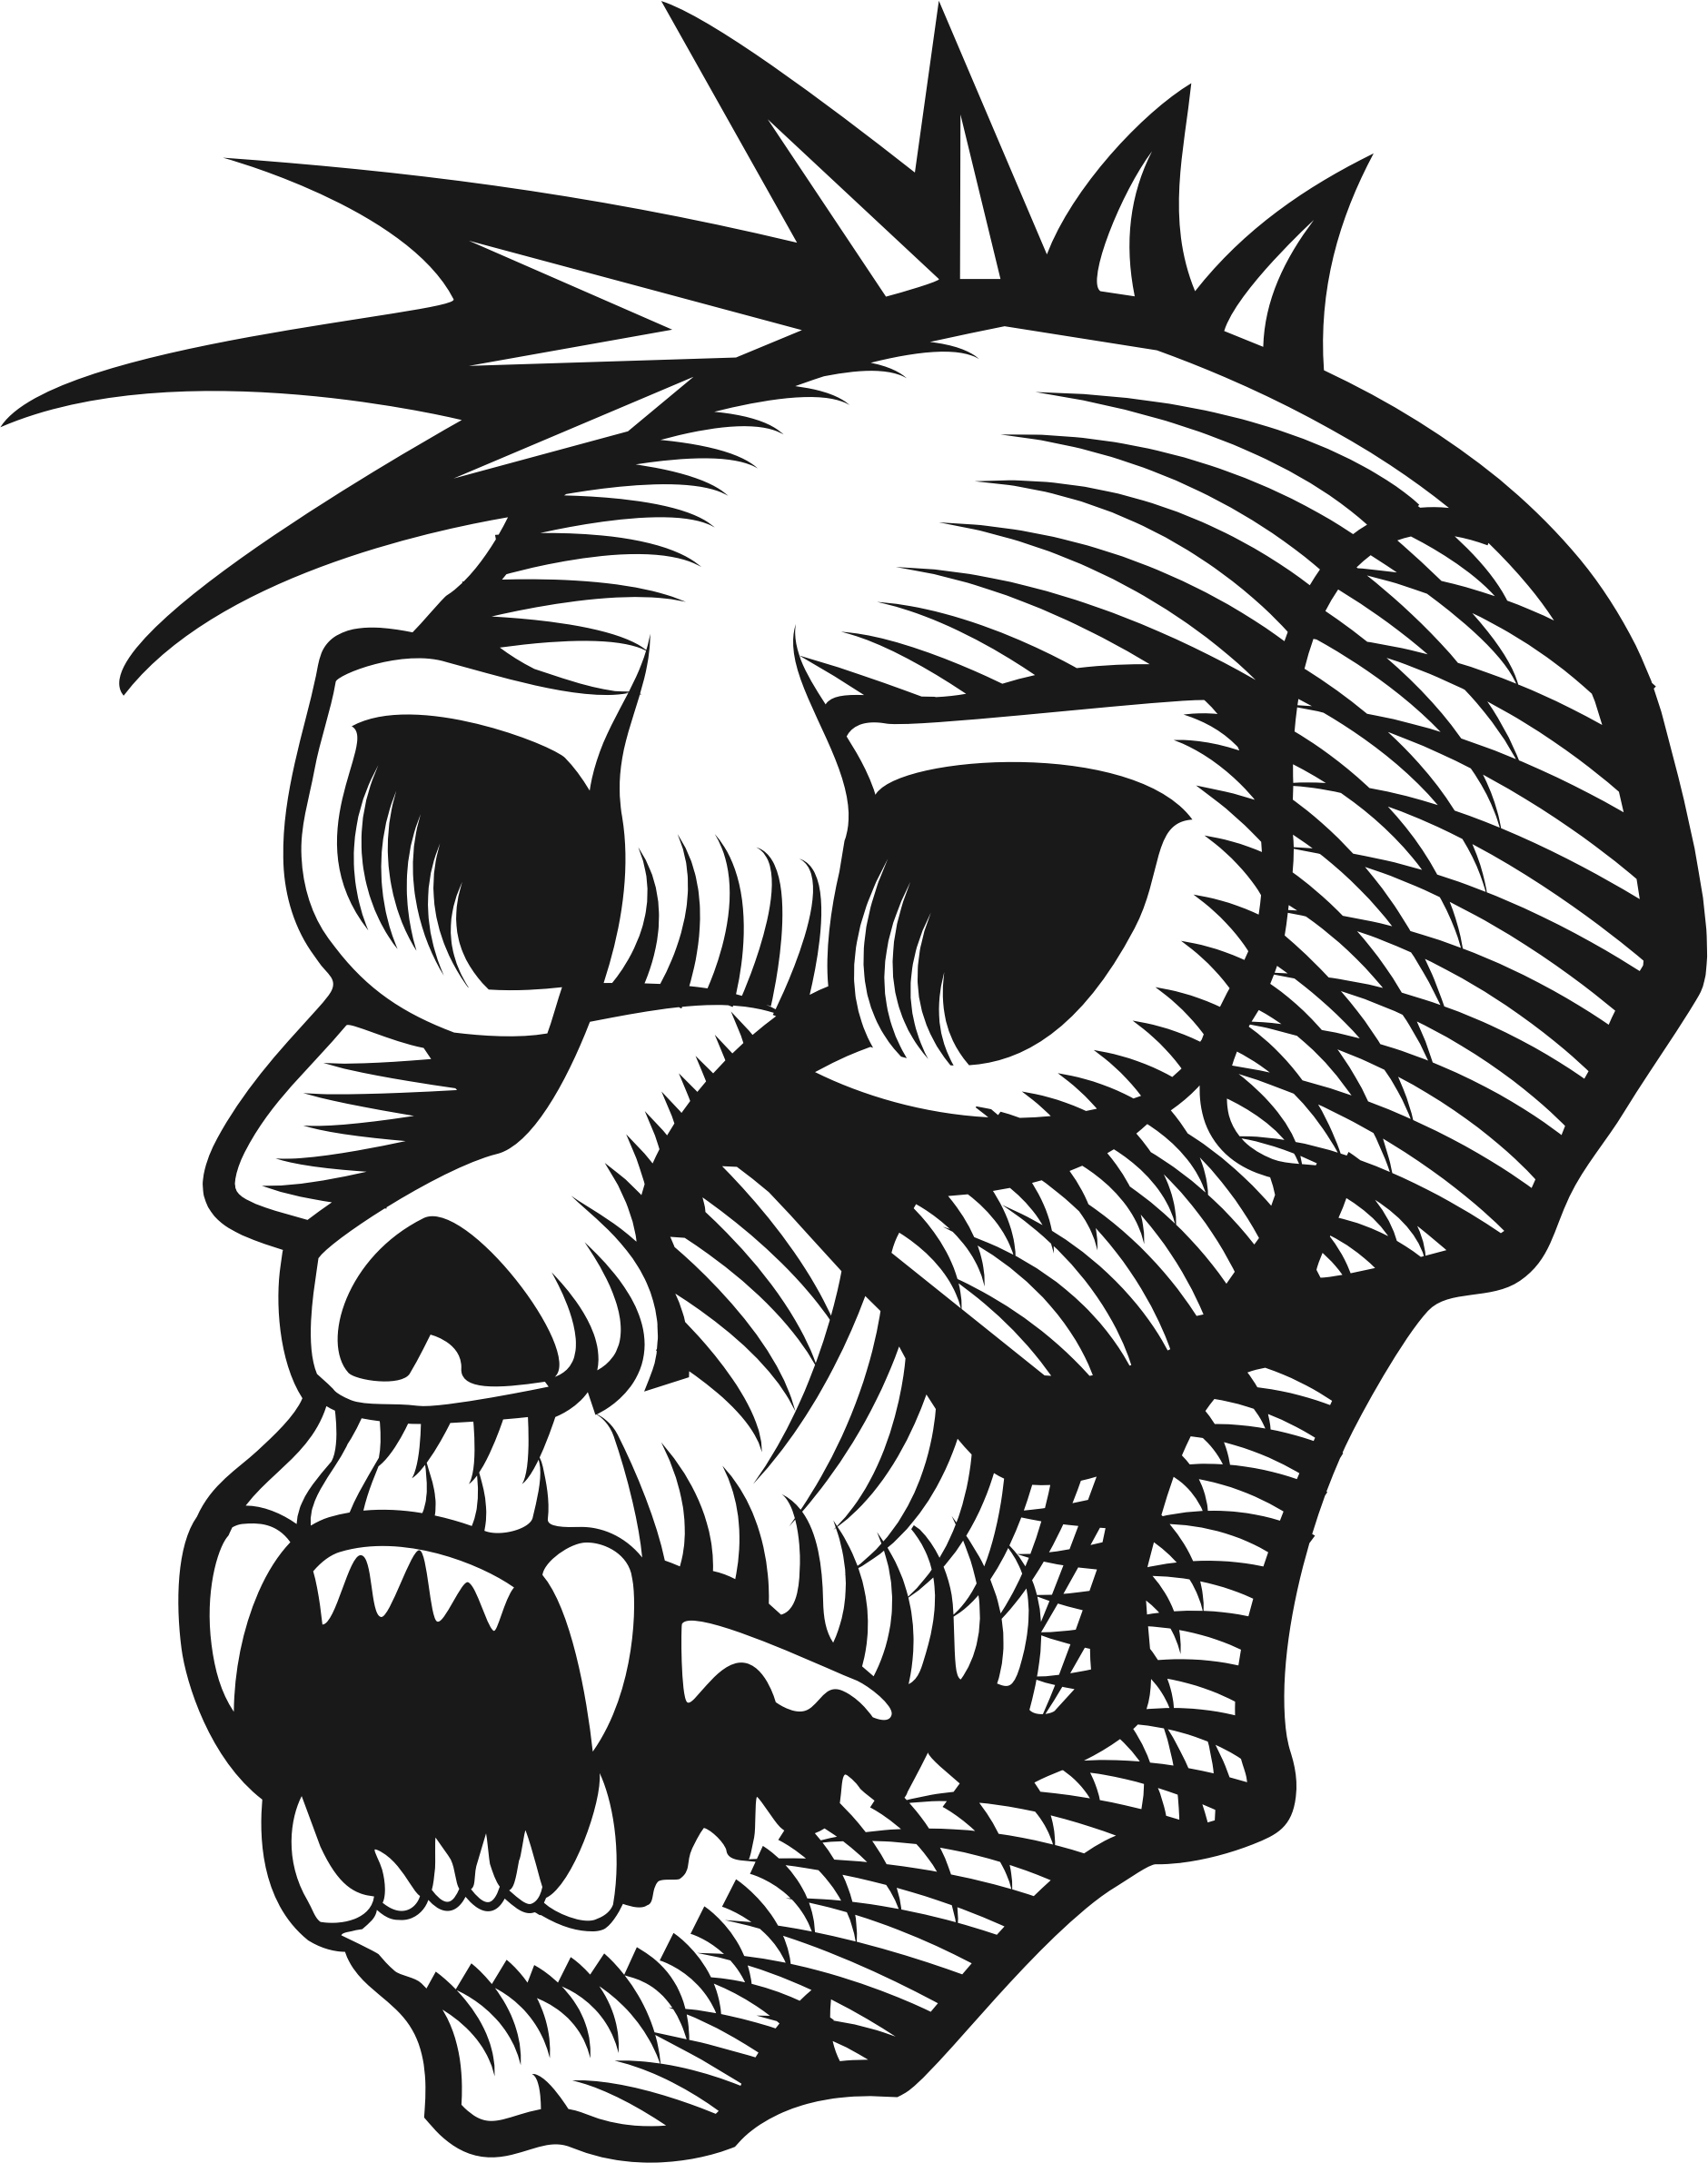 Youtube clipart skull. Monkey drawing at getdrawings